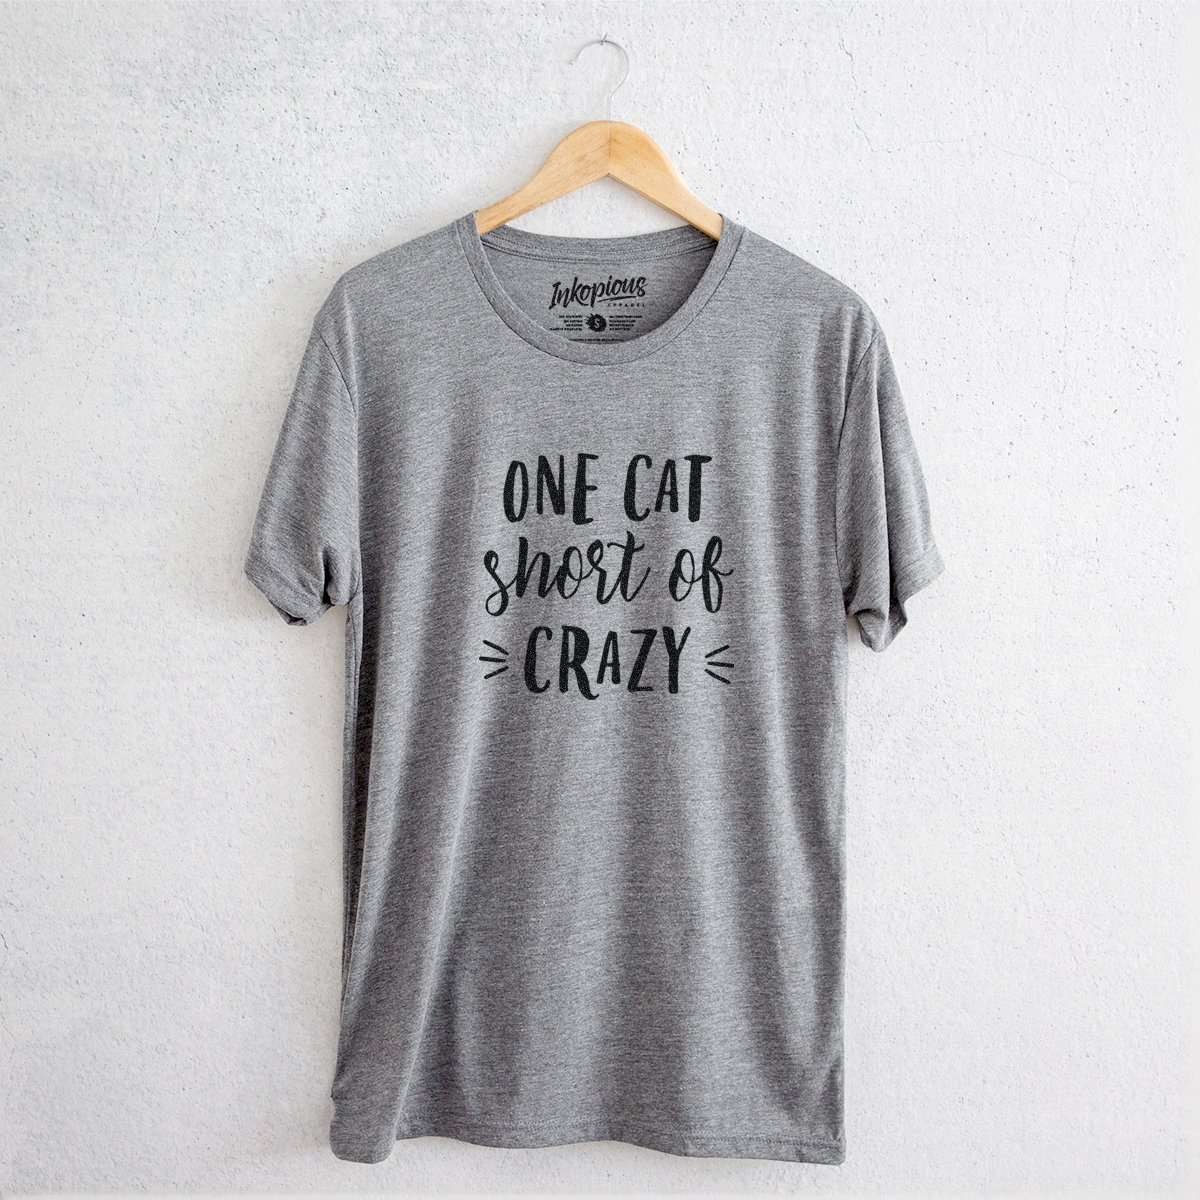 One Cat Short - Tri-Blend Unisex Crew